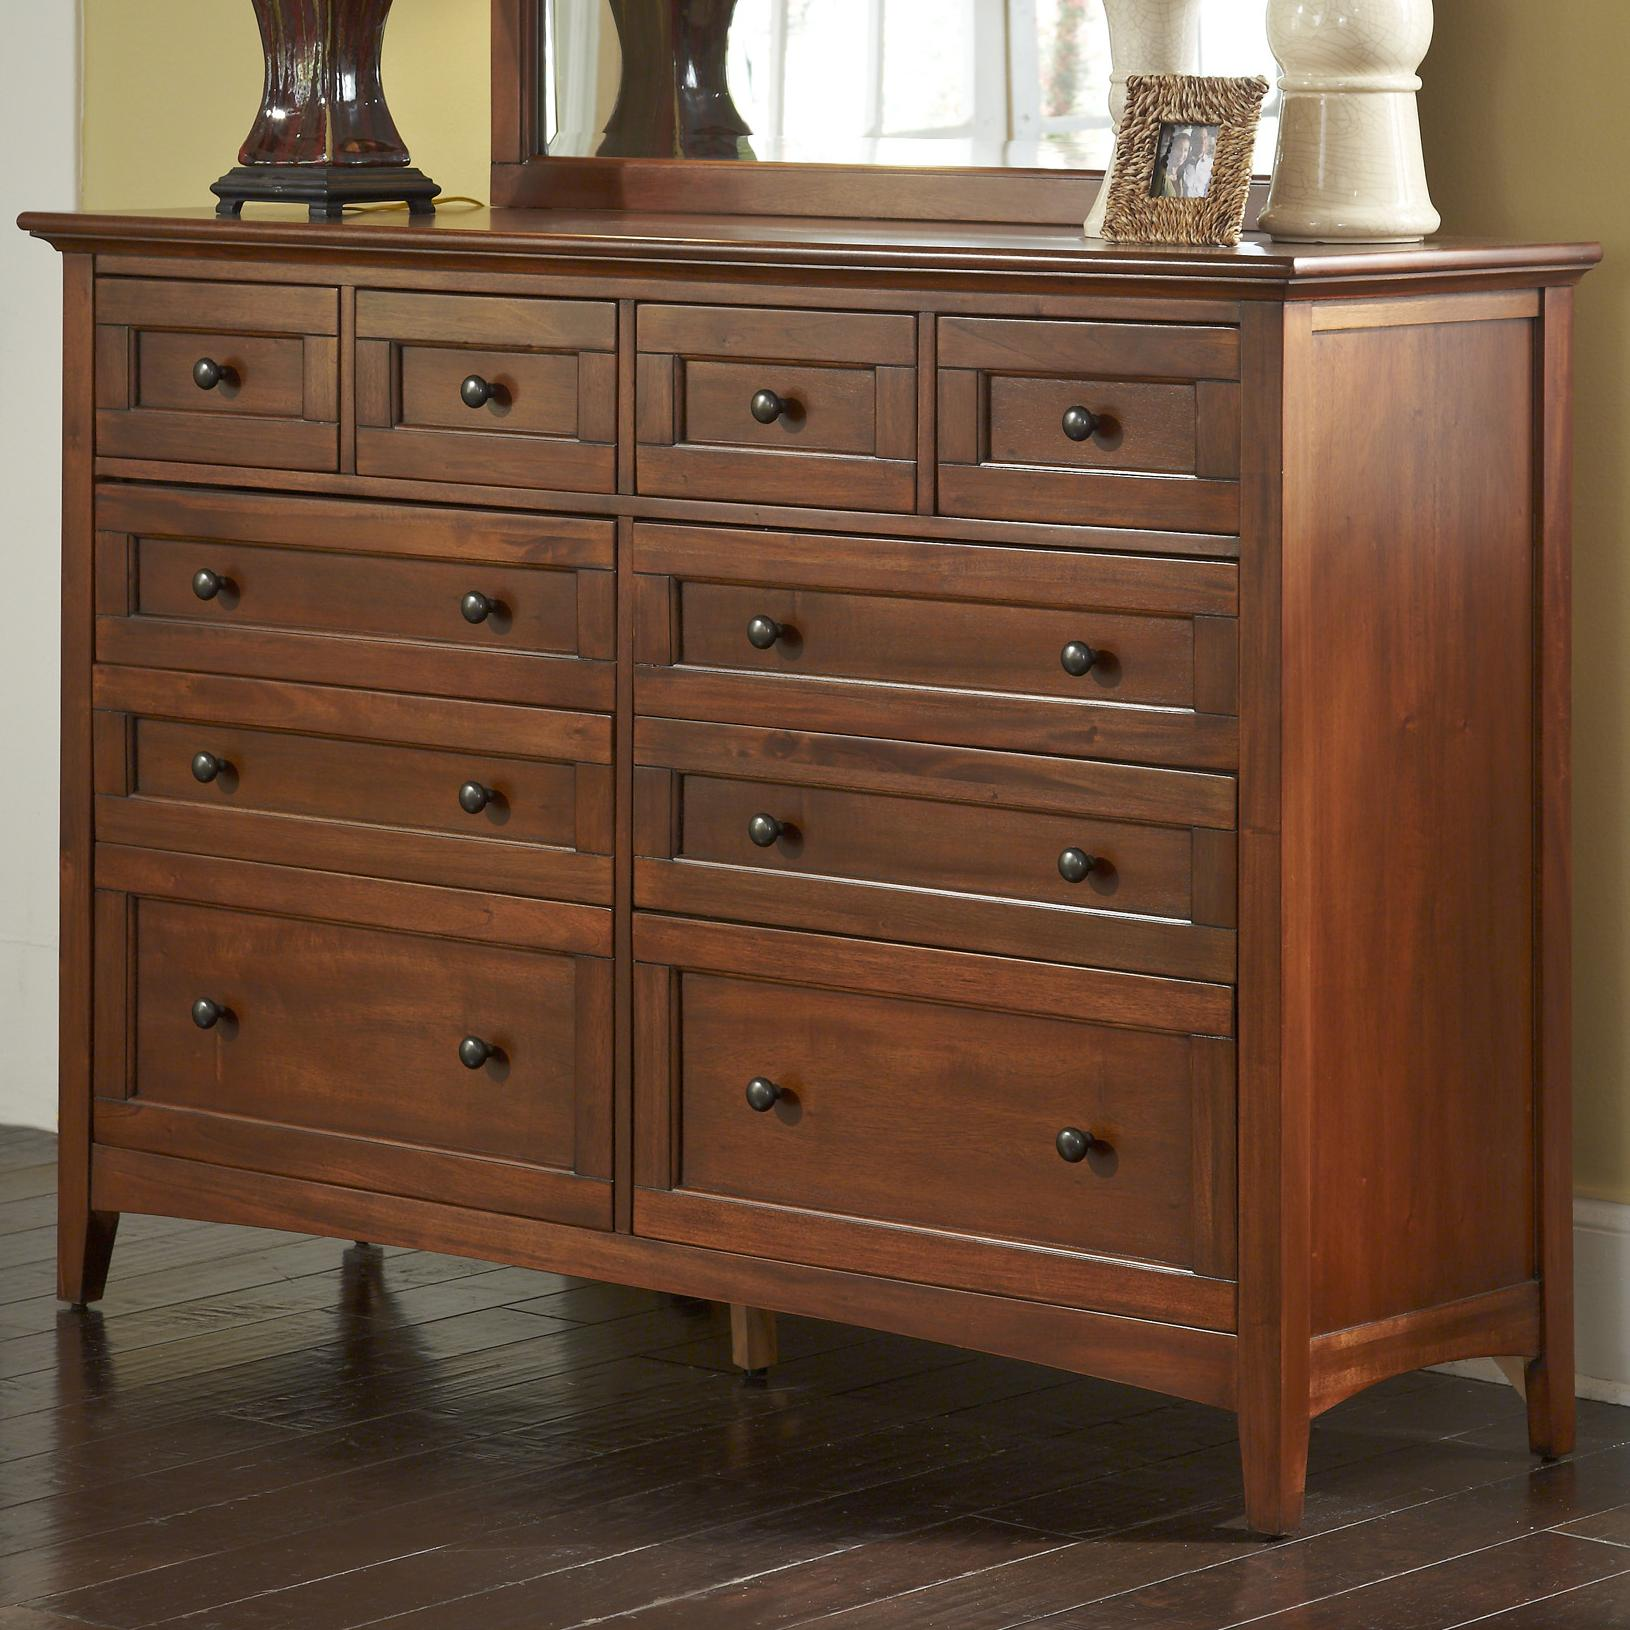 Transitional 10Drawer Dresser with Felt Lined Top Drawers by AAmerica  Wolf Furniture